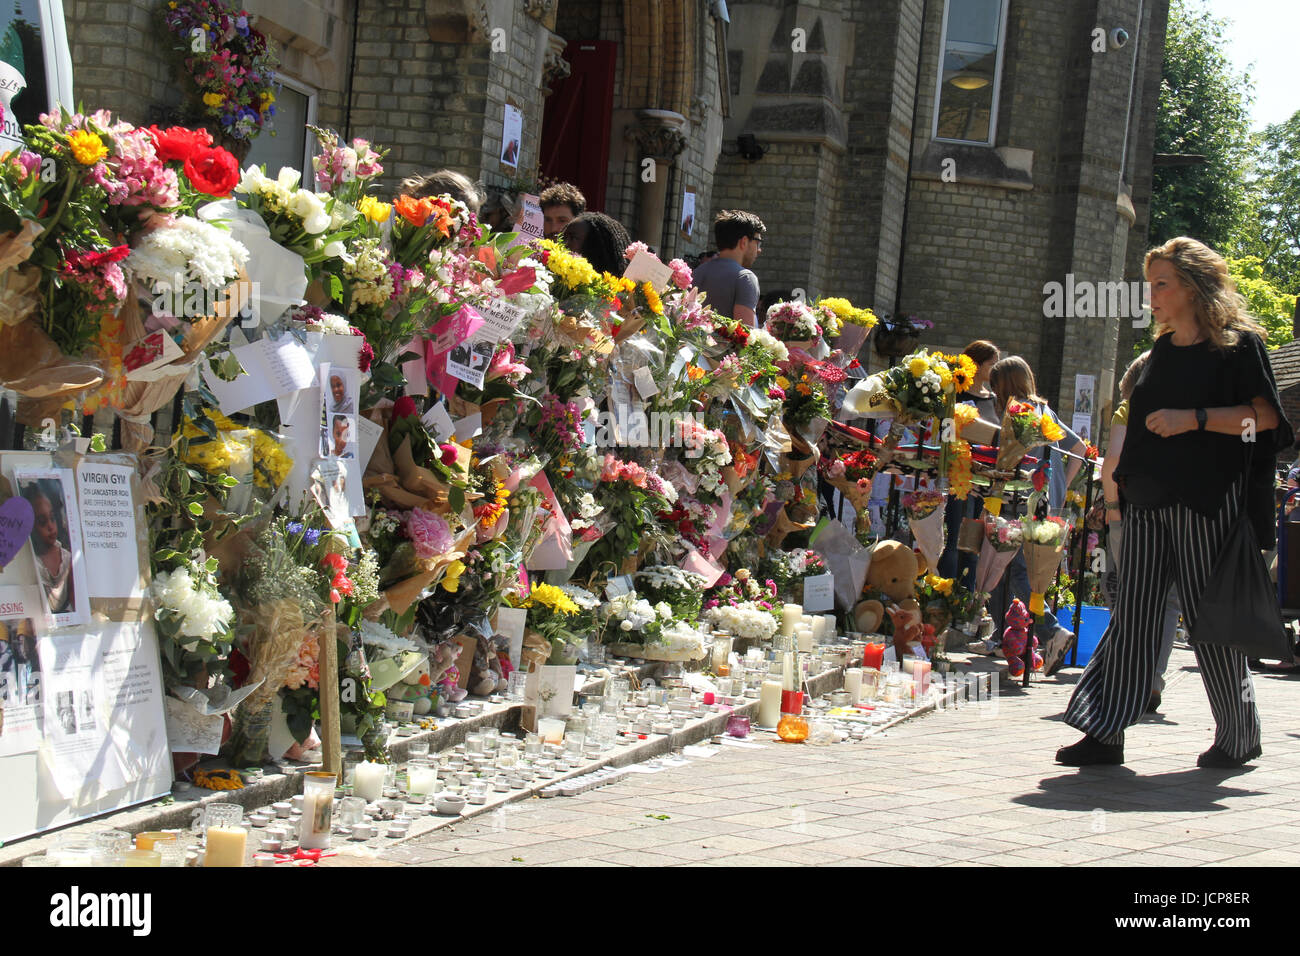 London, UK. 16th June, 2017. Memorial flowers and candles laid outside the Notting Hill Methodist Church following - Stock Image